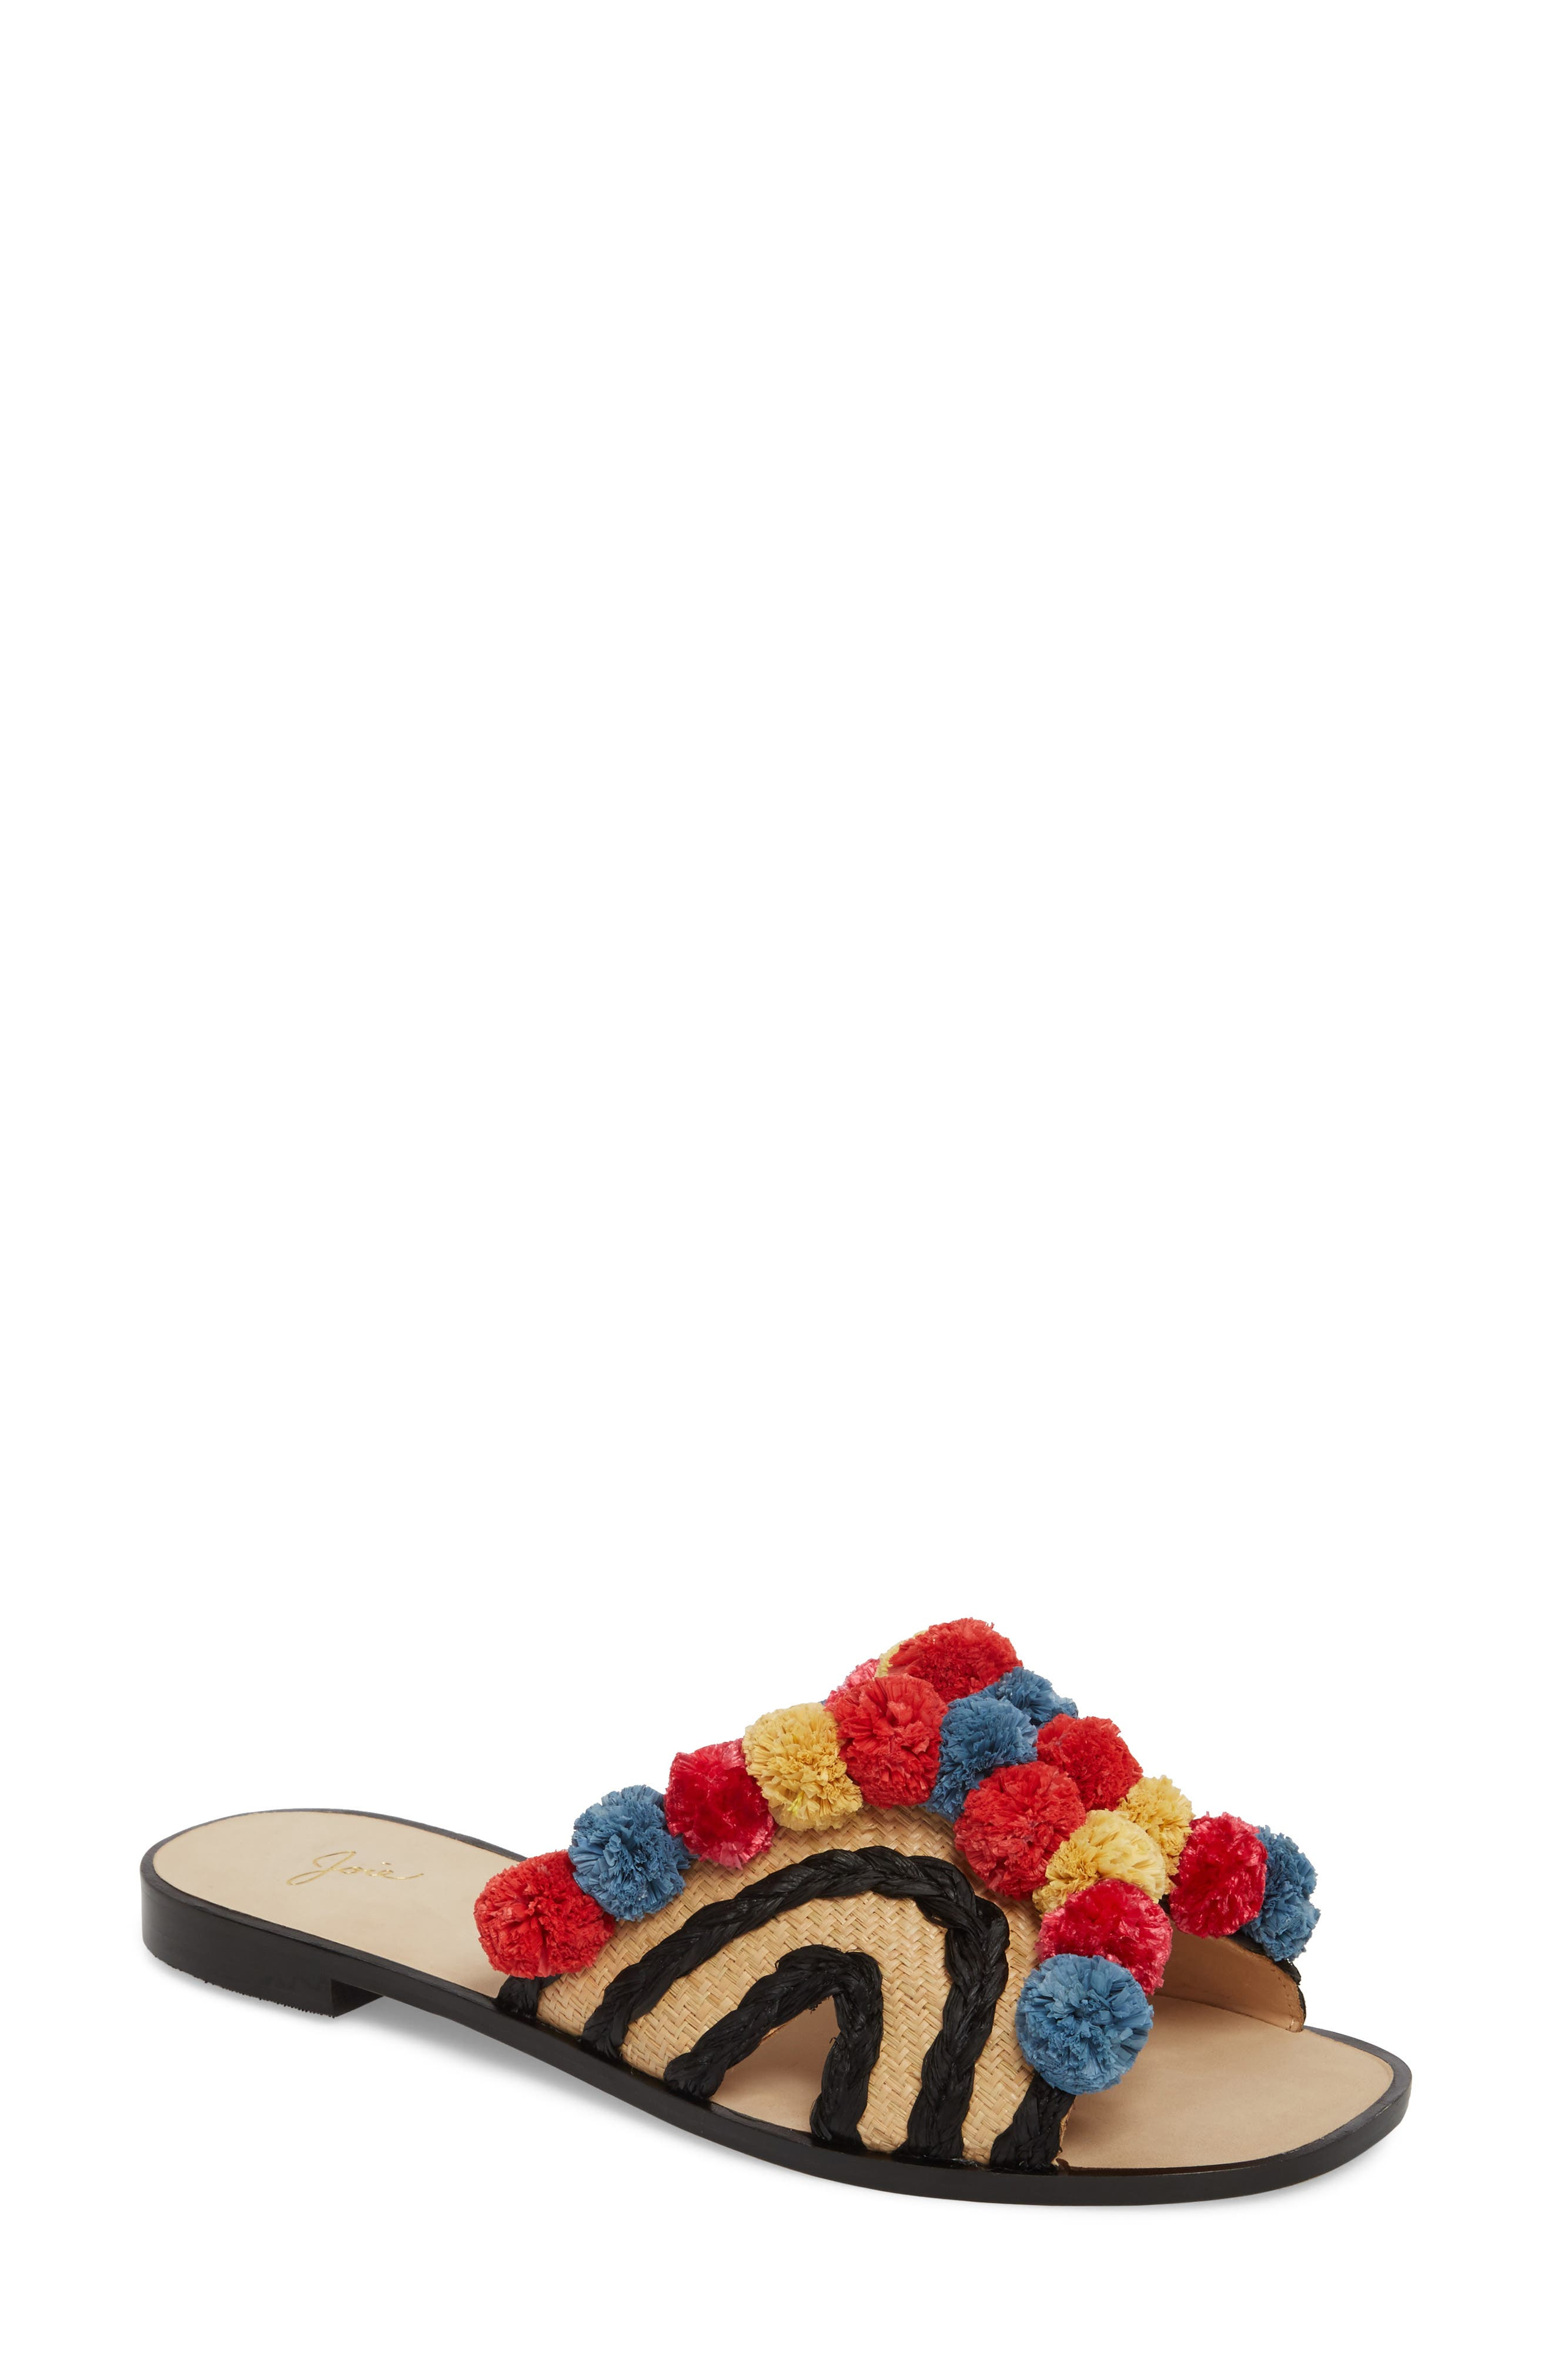 Paden Pompom Slide Sandals,                             Main thumbnail 1, color,                             002